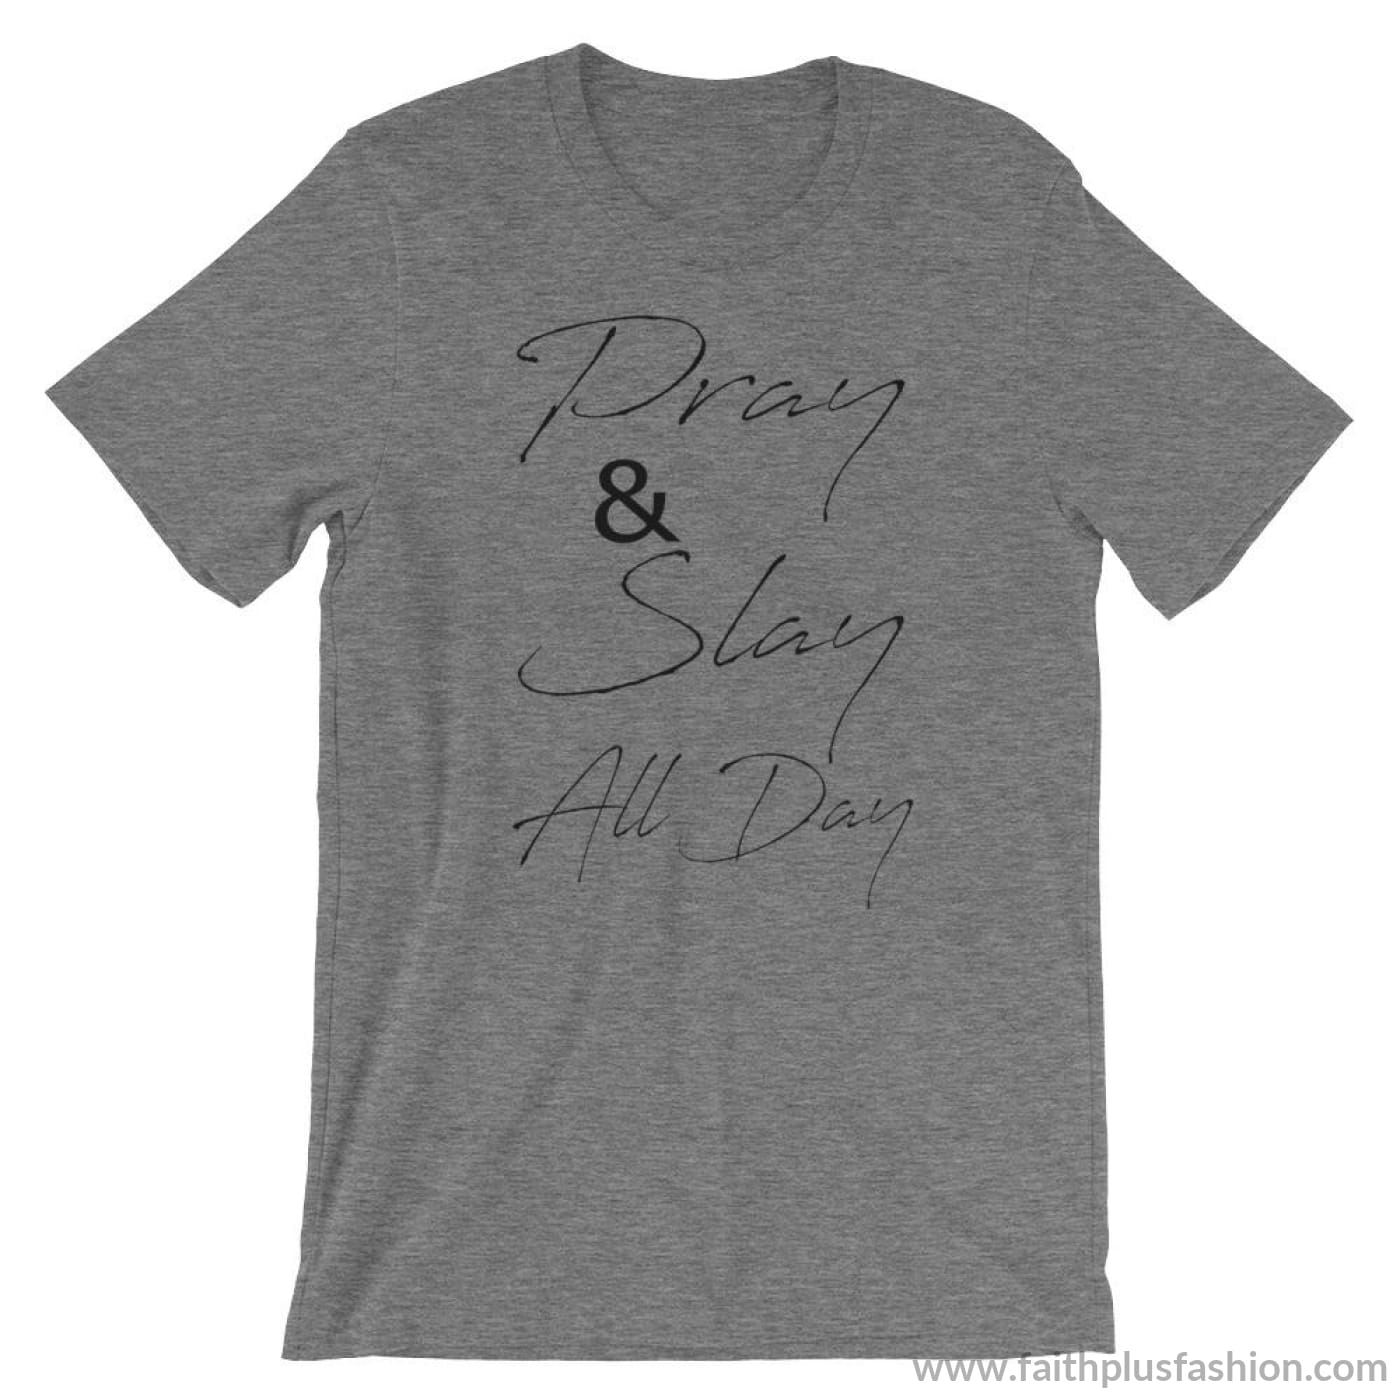 Pray & Slay All Day Short-Sleeve Unisex T-Shirt - Deep Heather / S - T-Shirt